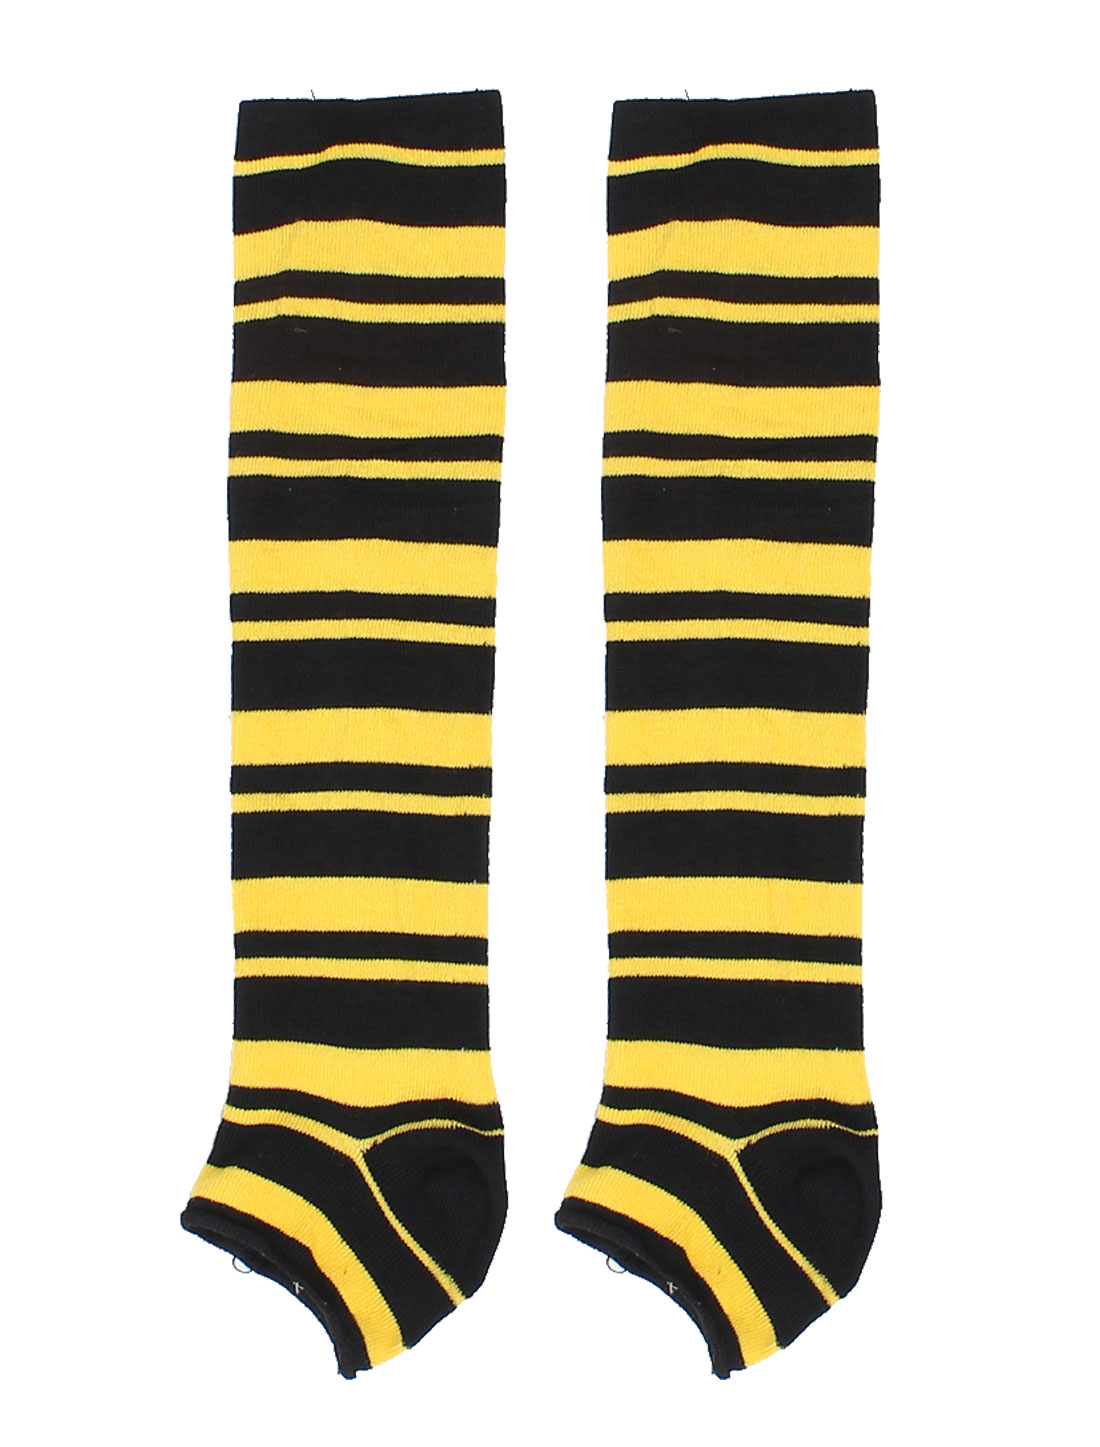 Women Yellow Black Striped Legging Leg Warmer w Boat Socks 1 Pair x Leg Warmer, 1 Pair x Boat Socks